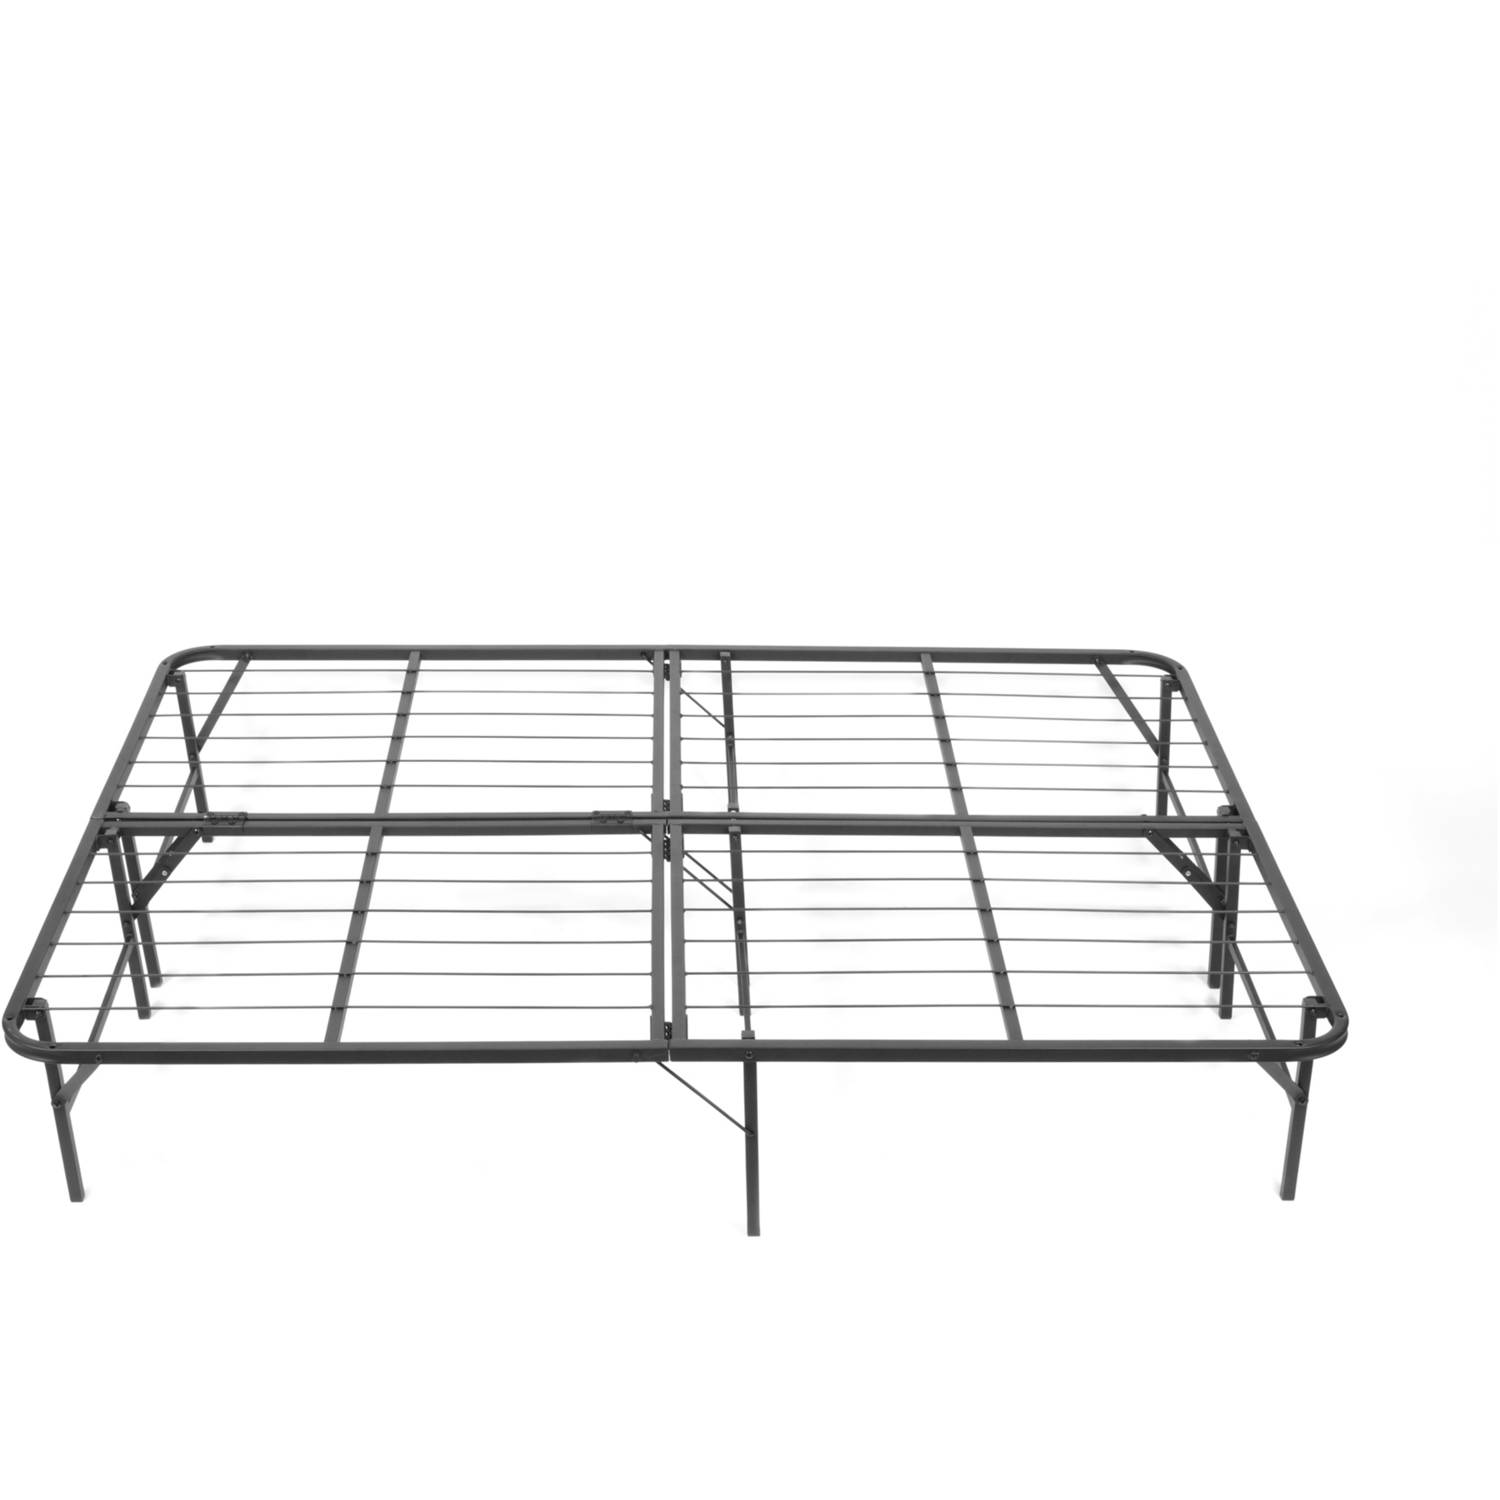 Pragma Simple Base Bi-Fold Bed Frame, Multiple Sizes | eBay